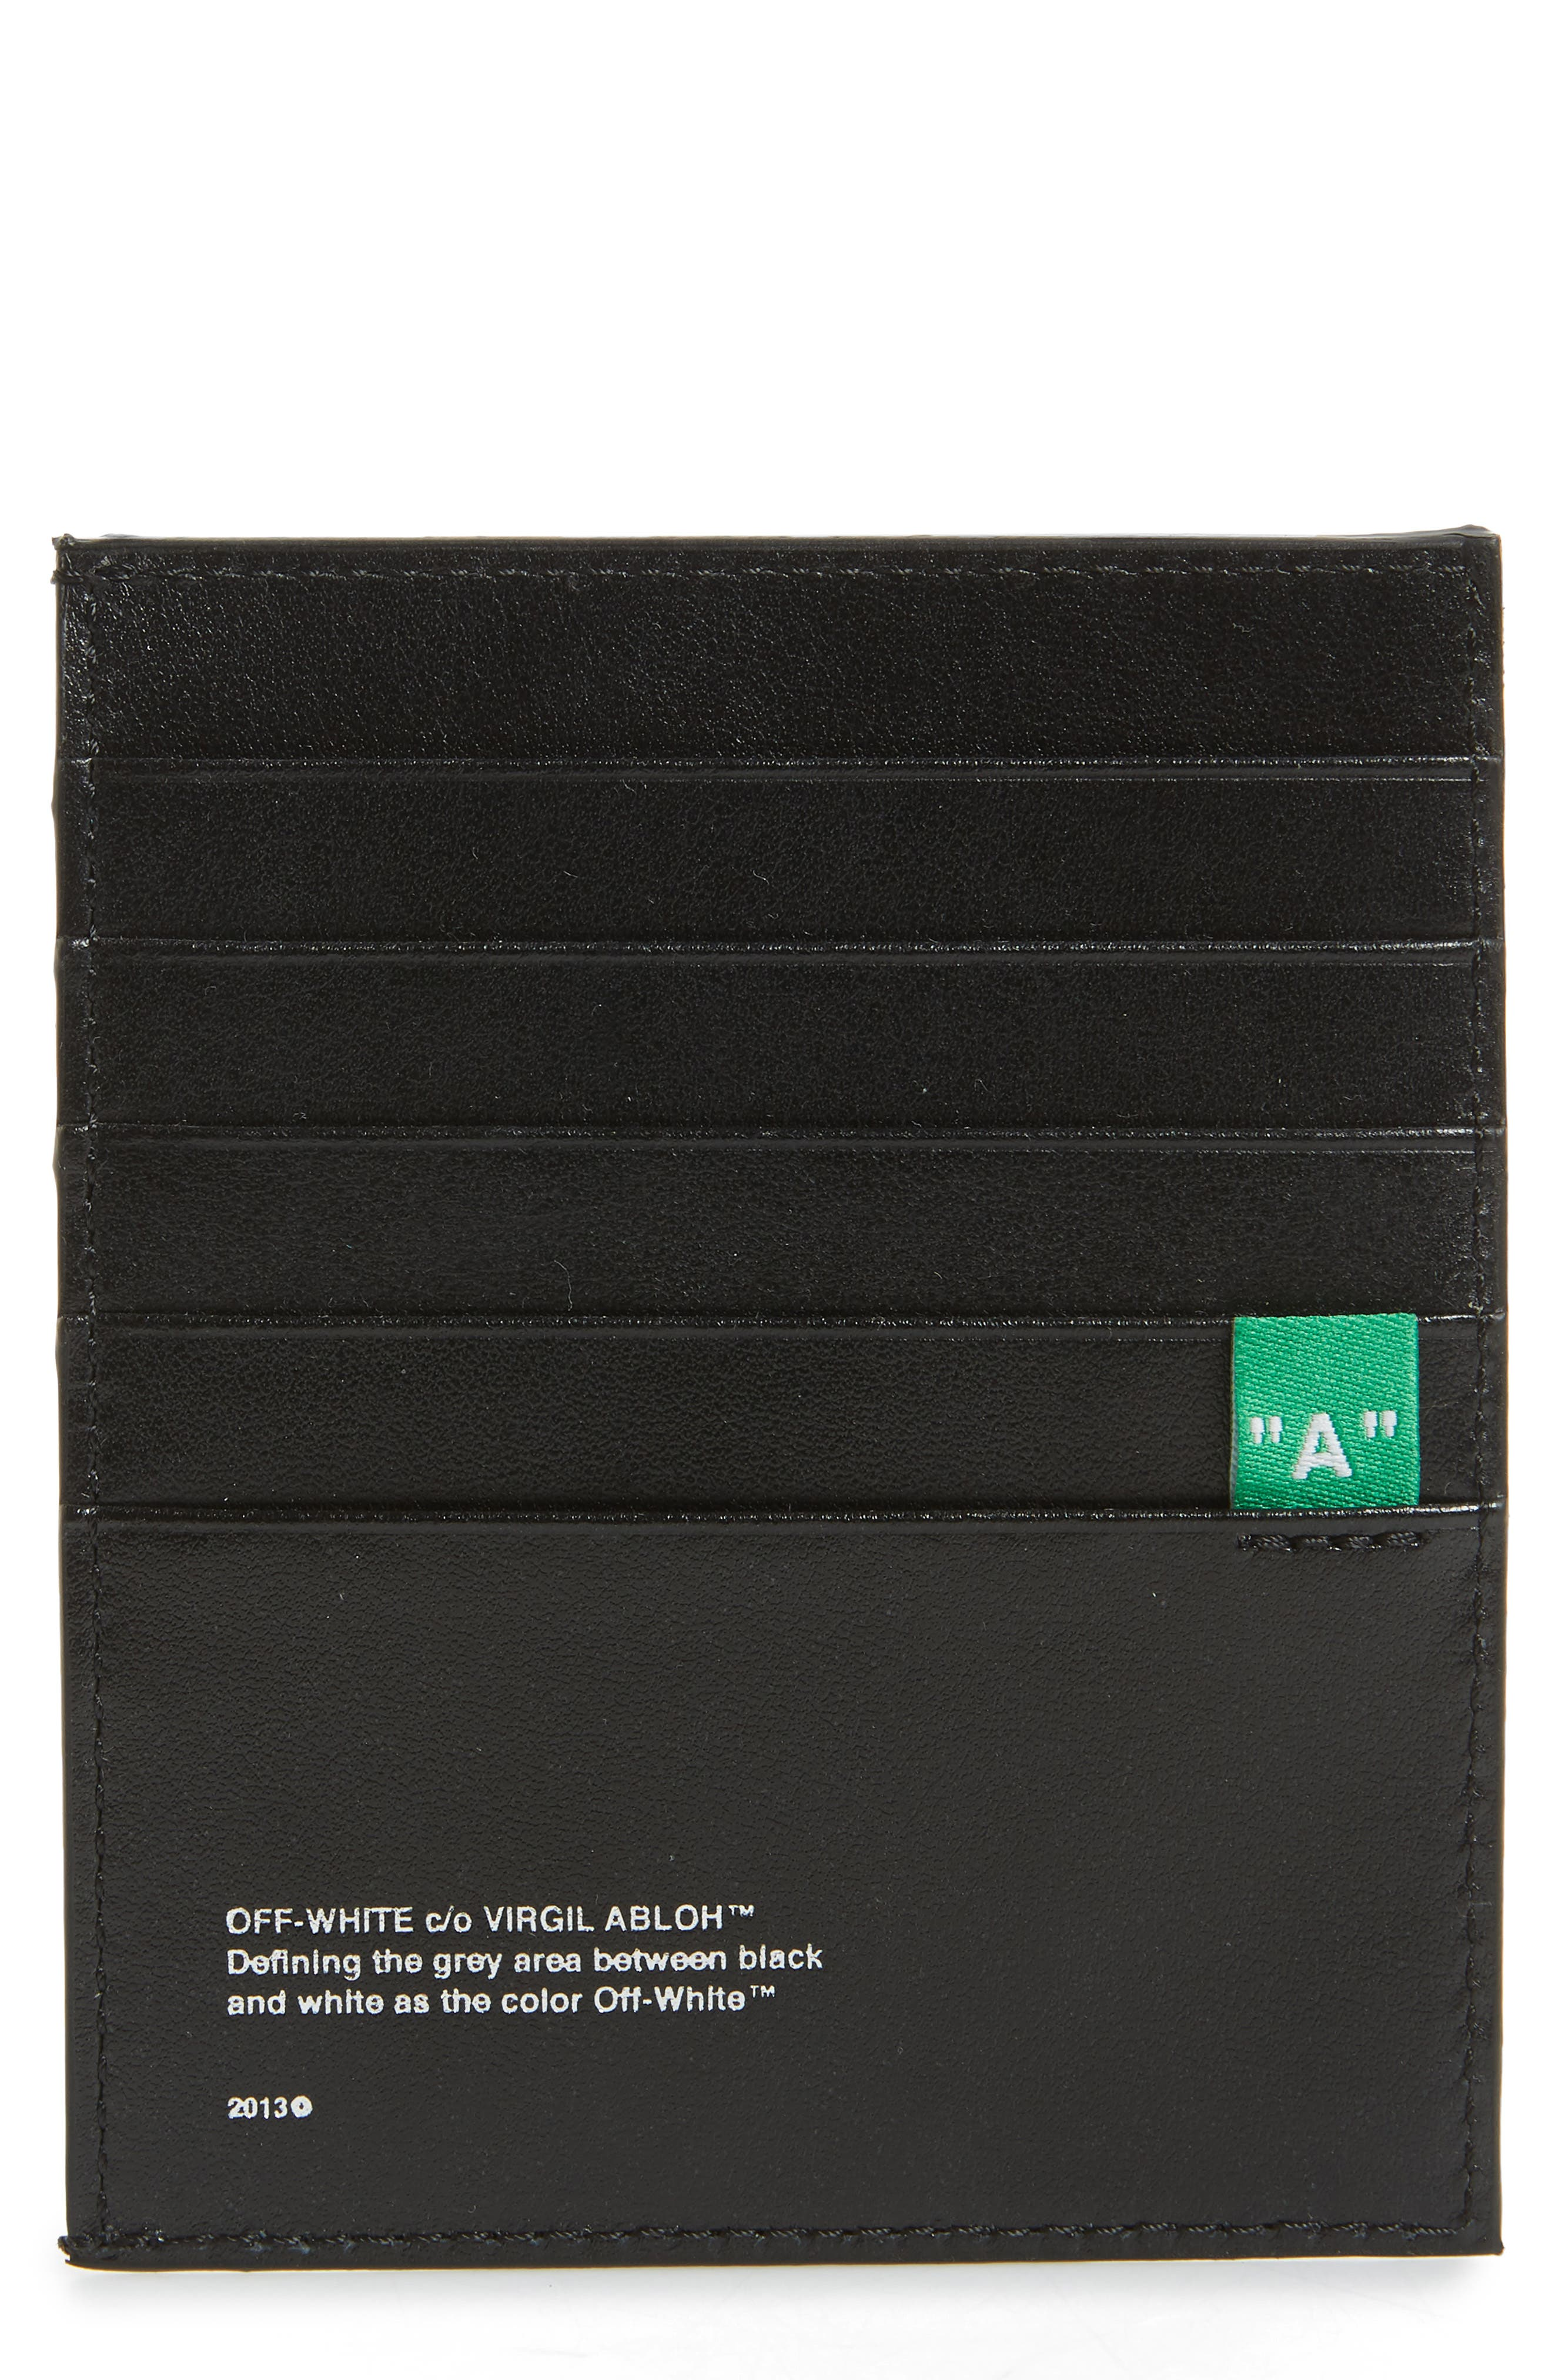 OFF-WHITE Diagonal Print Leather Card Case, Main, color, BLACK/WHITE